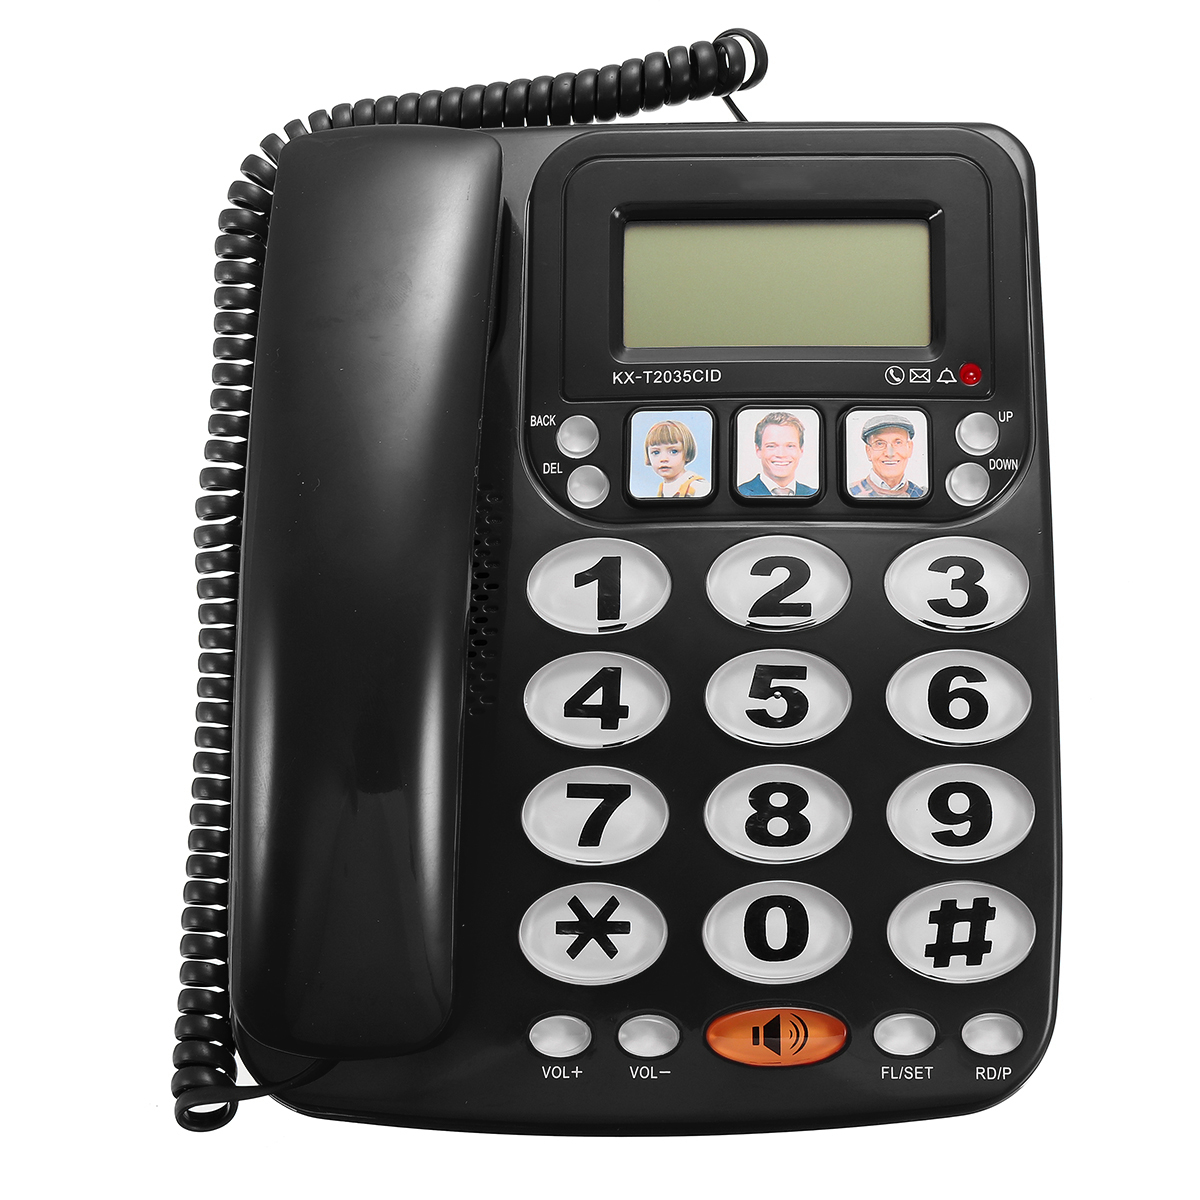 incoming fax document from caller id